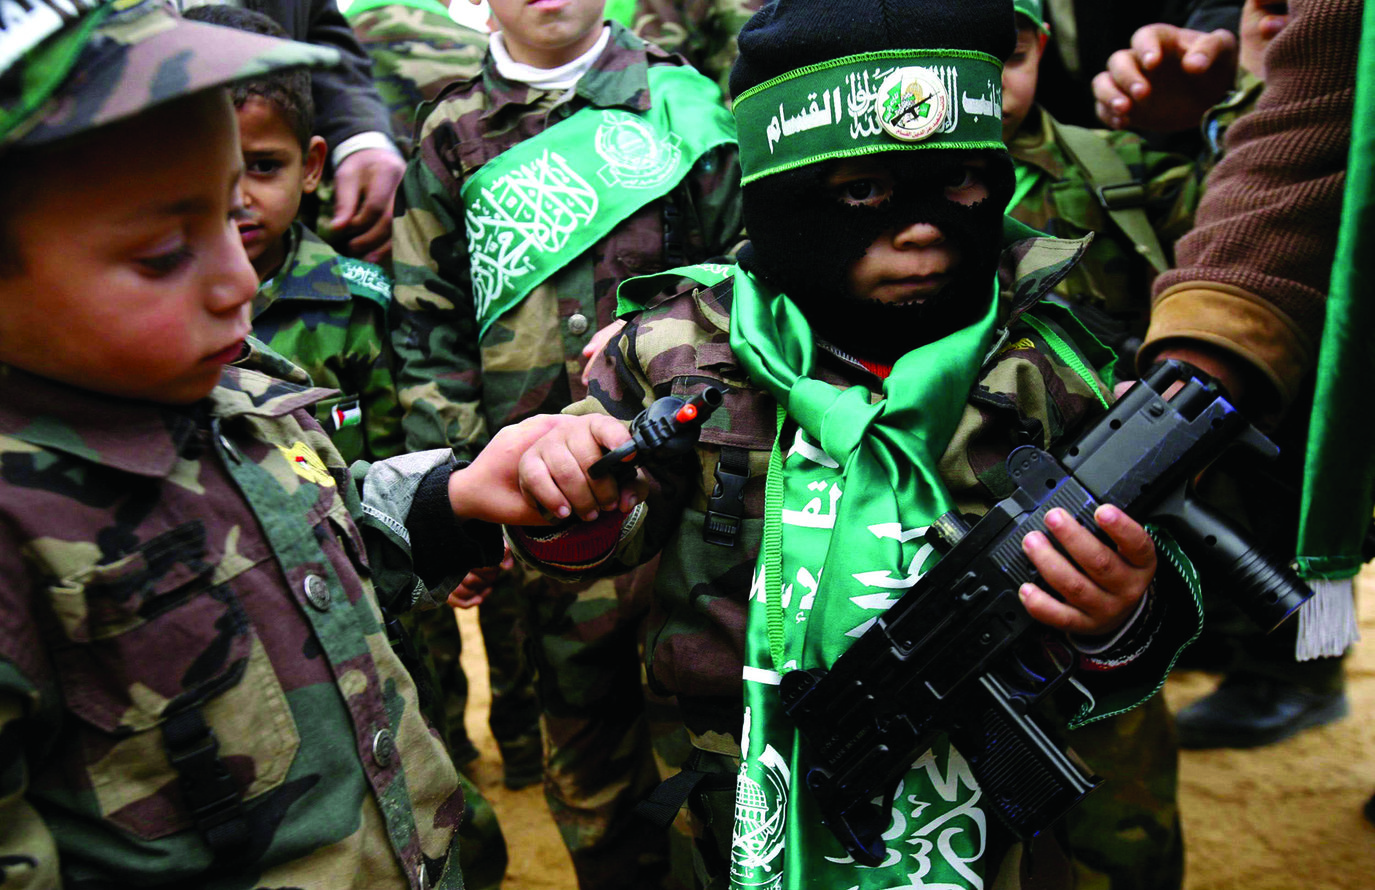 A Young  Palestinian boy dressed as a Hamas militant holds two toy guns with other small boys wearing military uniforms bearing Hamas banners during a rally  celebrating Hamas's victory in the Palestinain  parliamentary elections held at the Jabalya refugee camp.